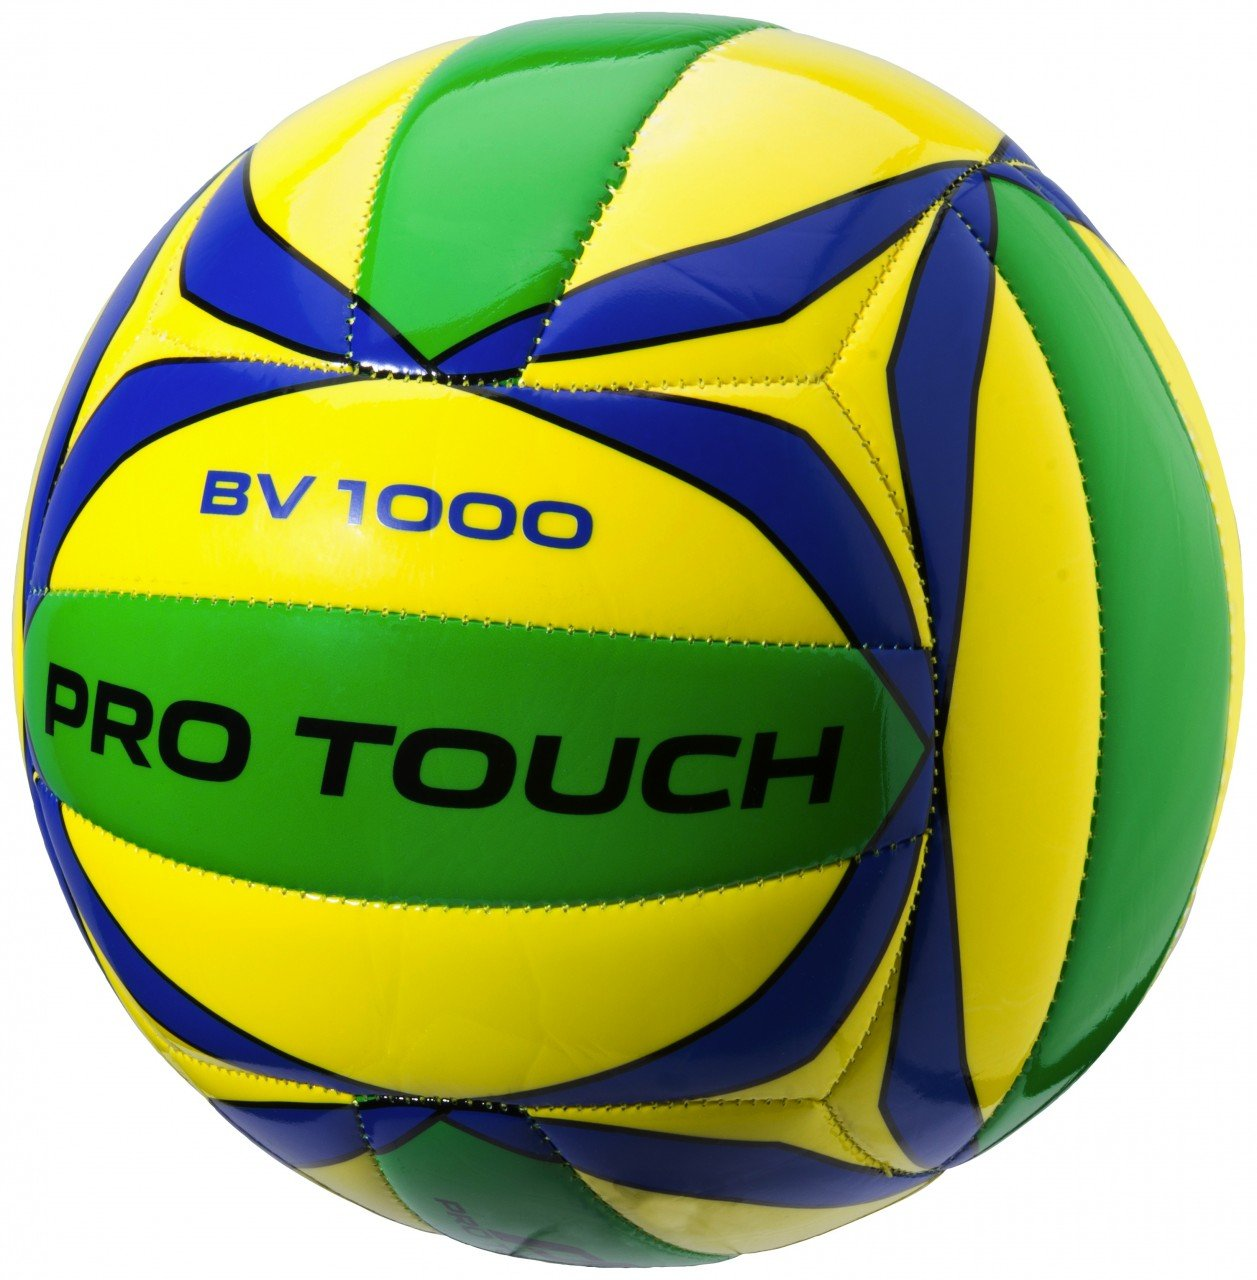 Pro Touch Beach-Volleyball Bv-1000 Beachvolleyball Gelb/Blau/Grün One Size PRR8A|#Pro Touch 62257